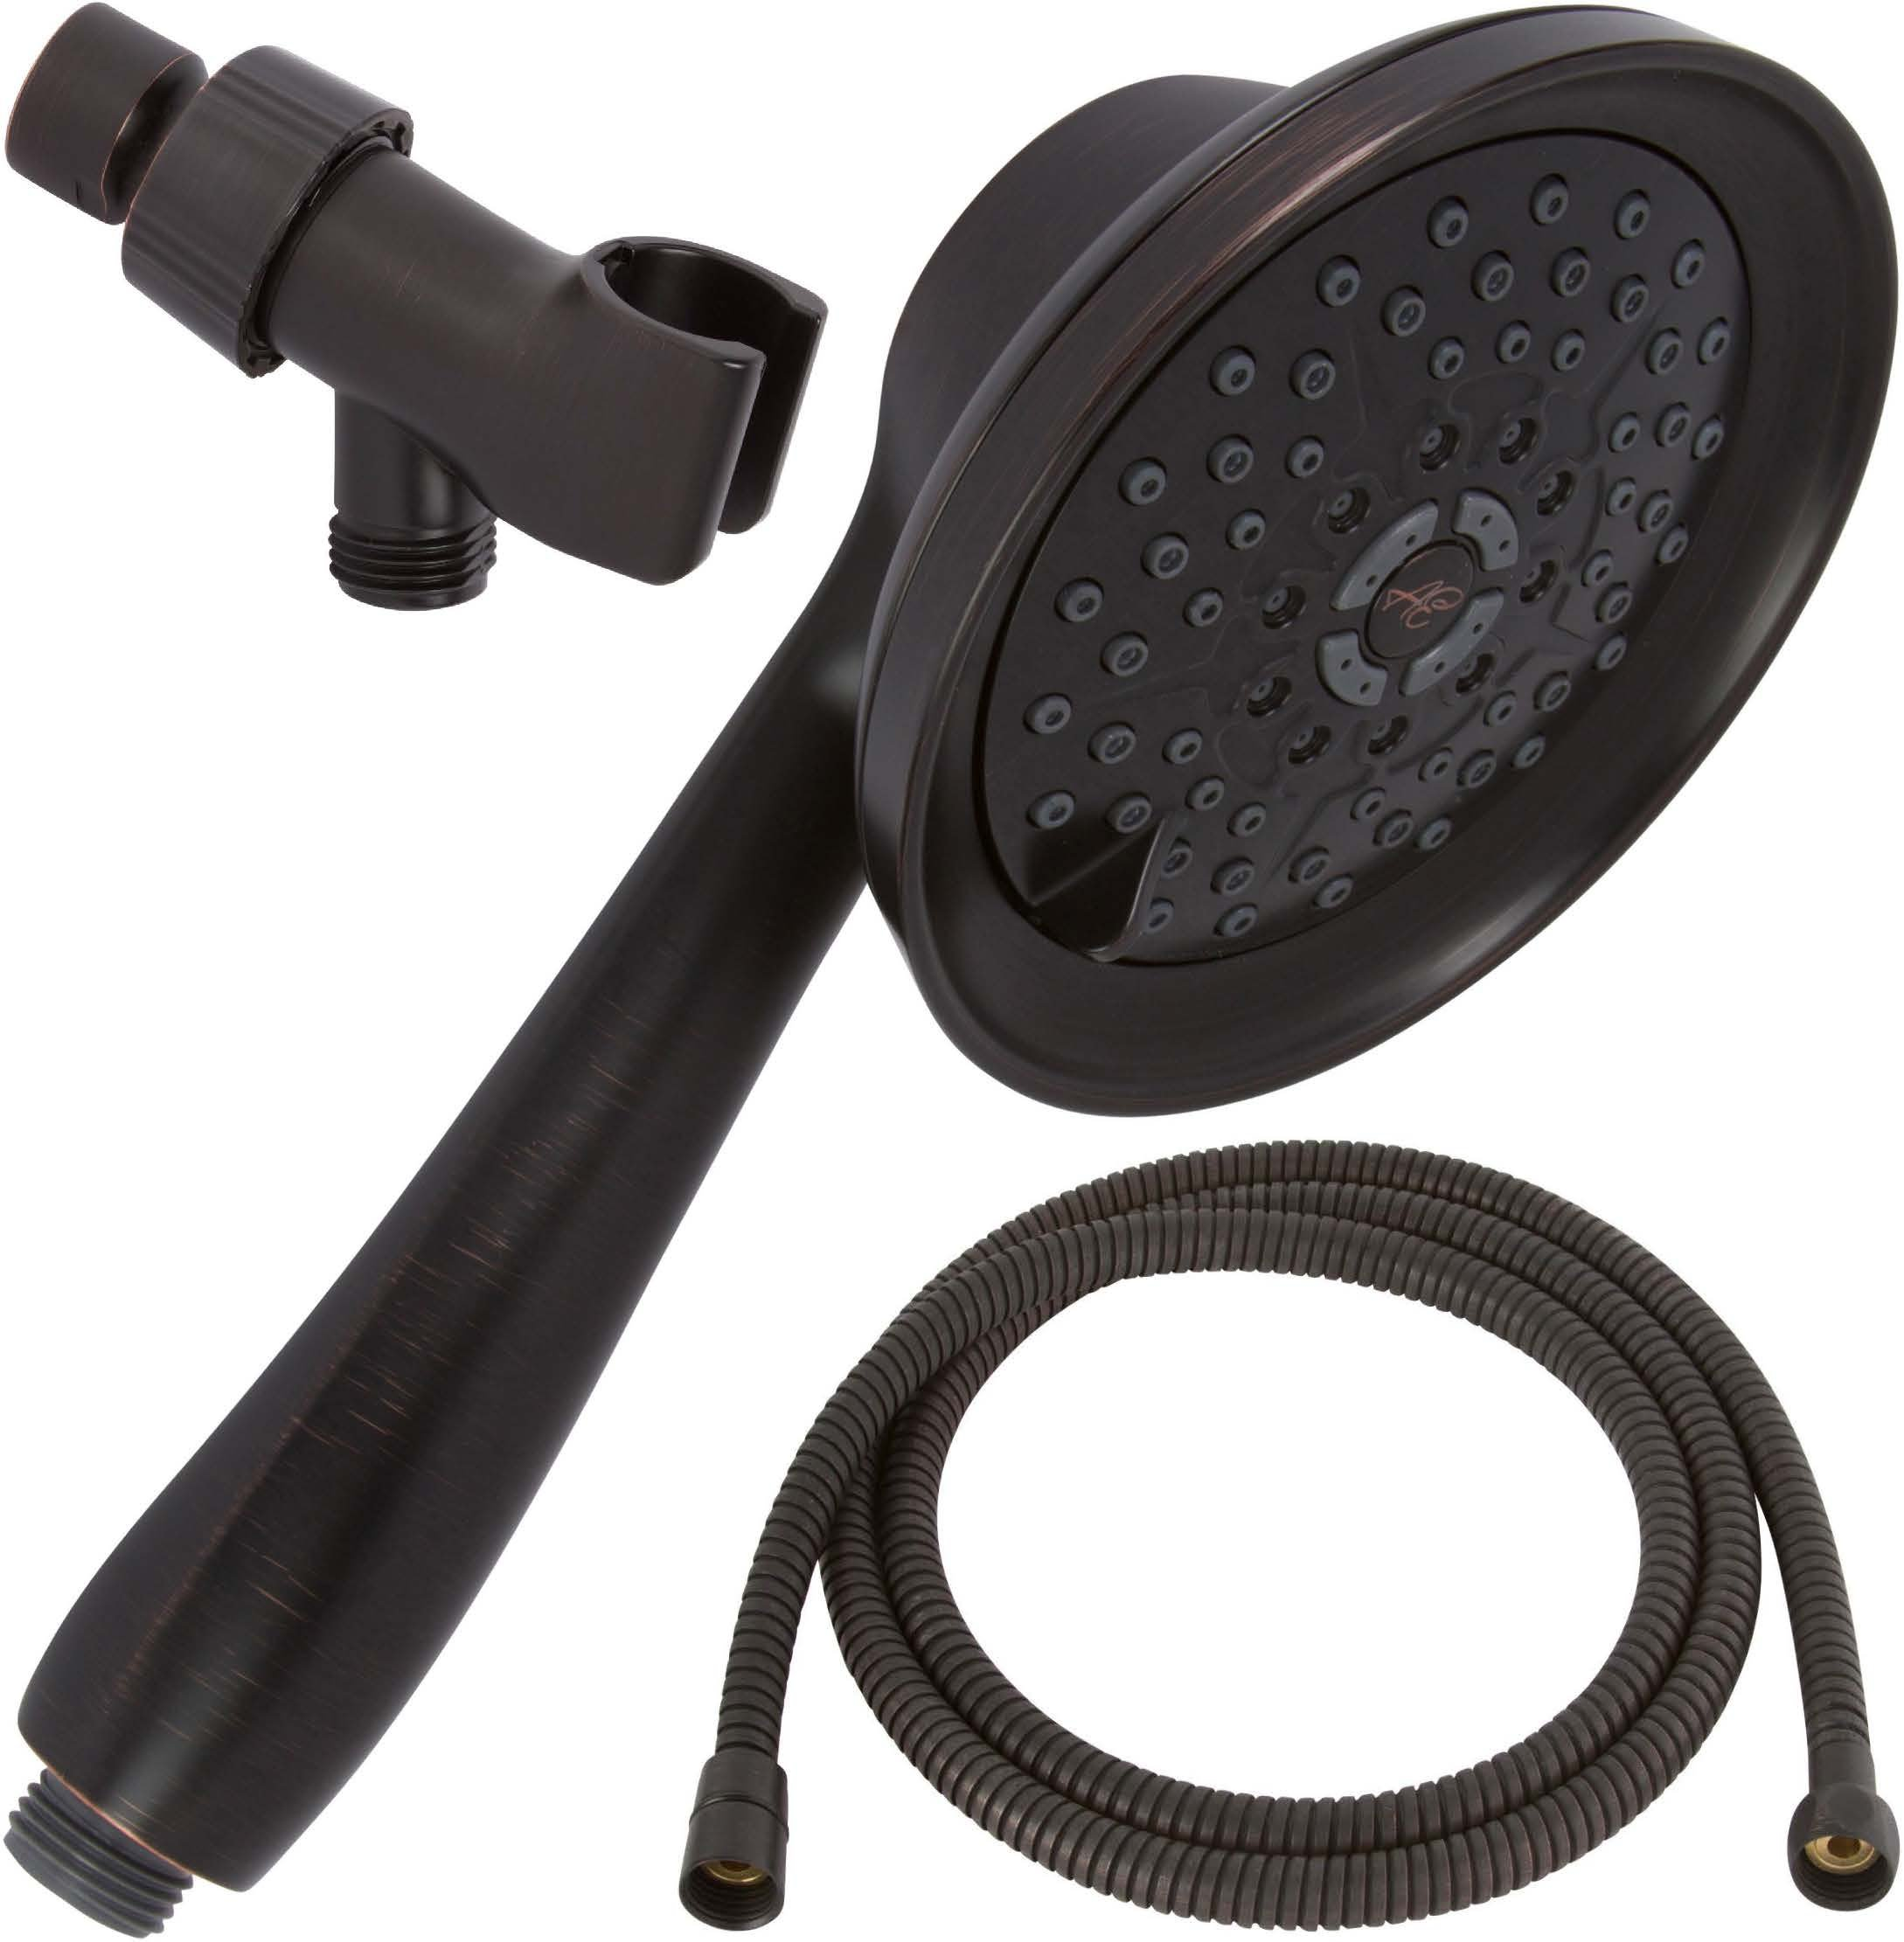 Shower Massager Handheld With Hose - Massage & Mist Hand Held Showerhead Kit - High Pressure Removable Head And Mount - Adjustable Massaging Rainfall Spray - Oil-Rubbed Bronze